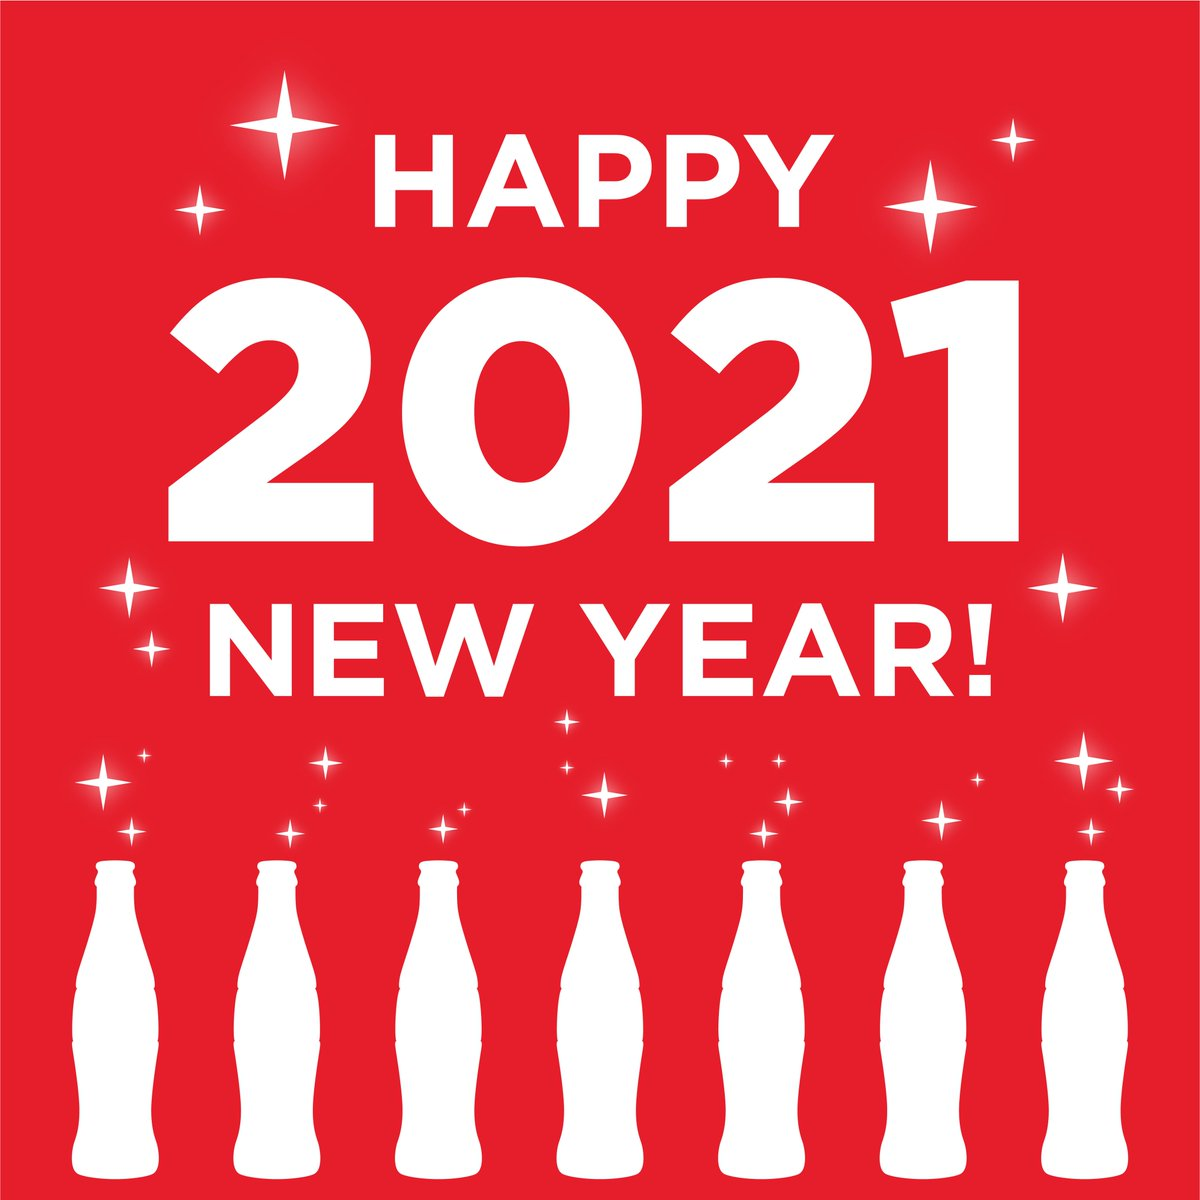 Cheers to the New Year! Wishing you and yours a happy, safe, healthy, and prosperous new year! #NewYearsDay